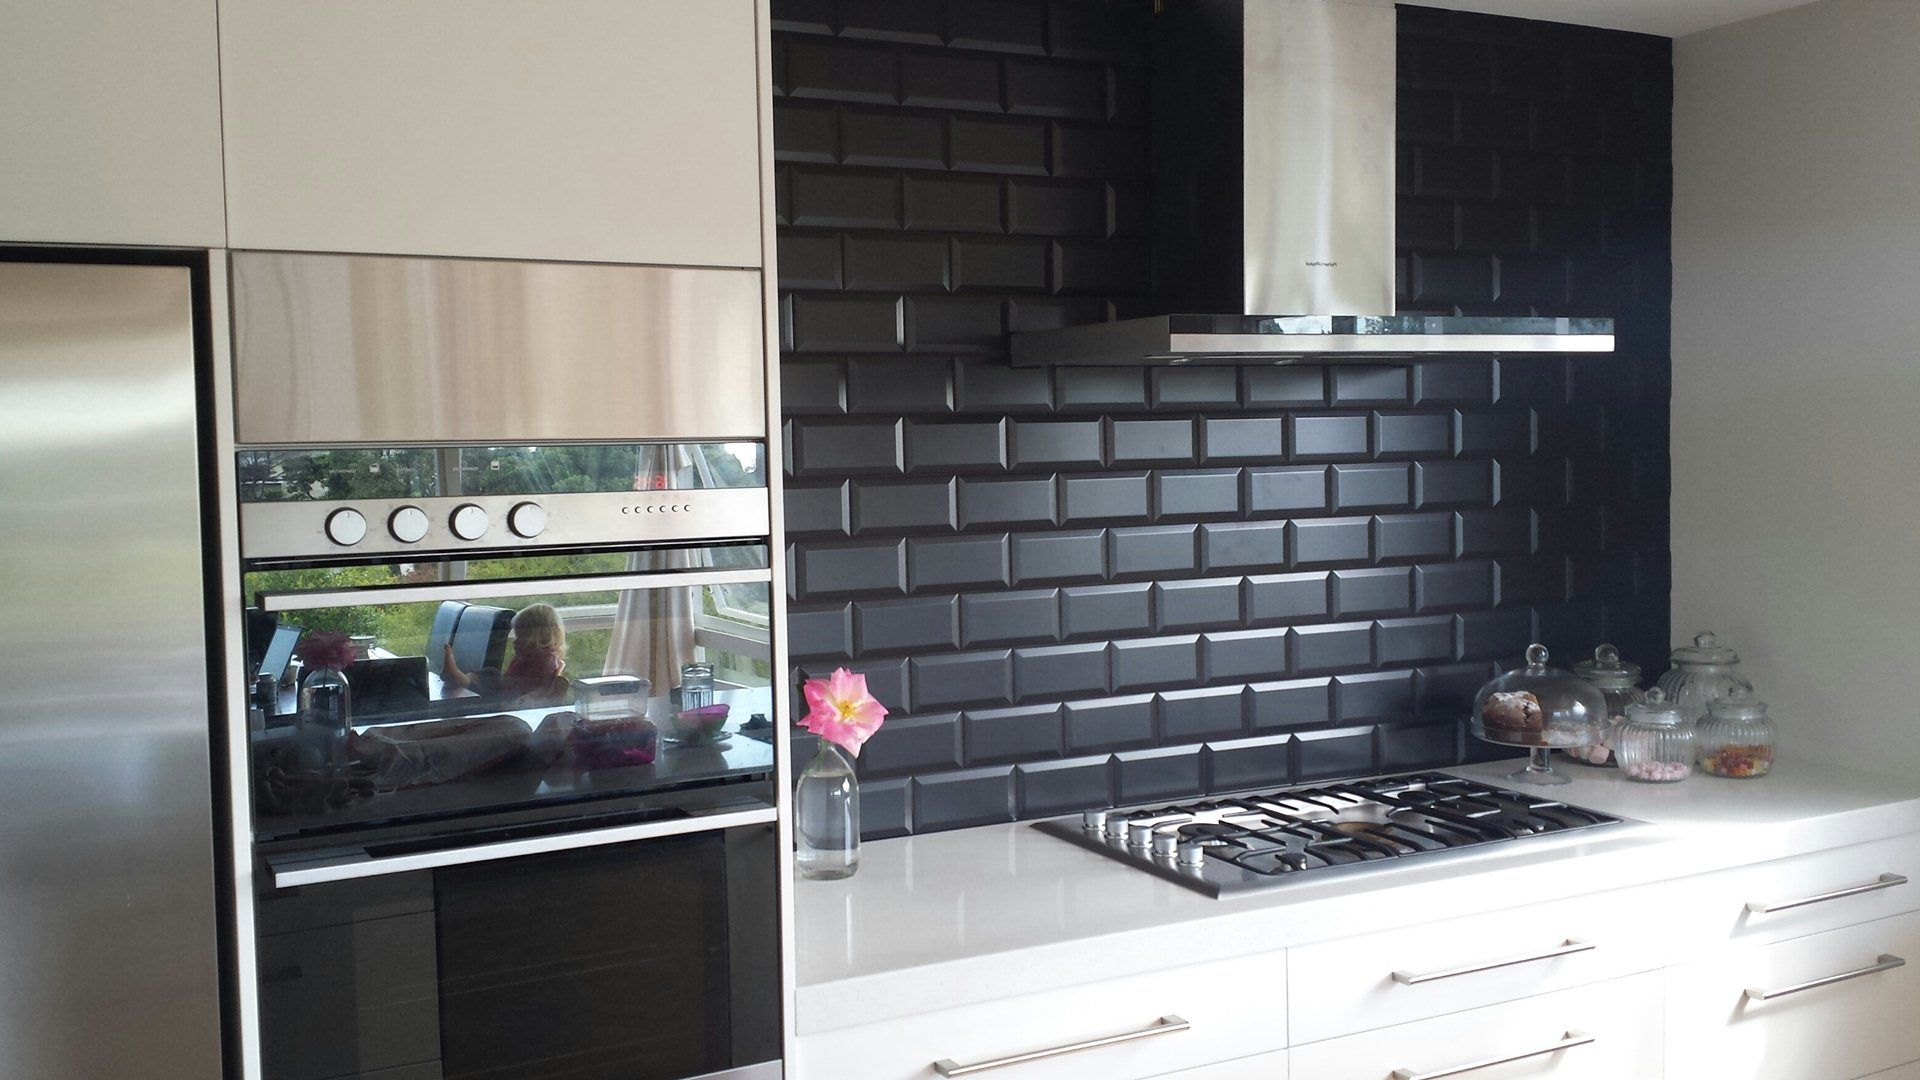 black tile kitchen image of black subway tile kitchen backsplash home 1708